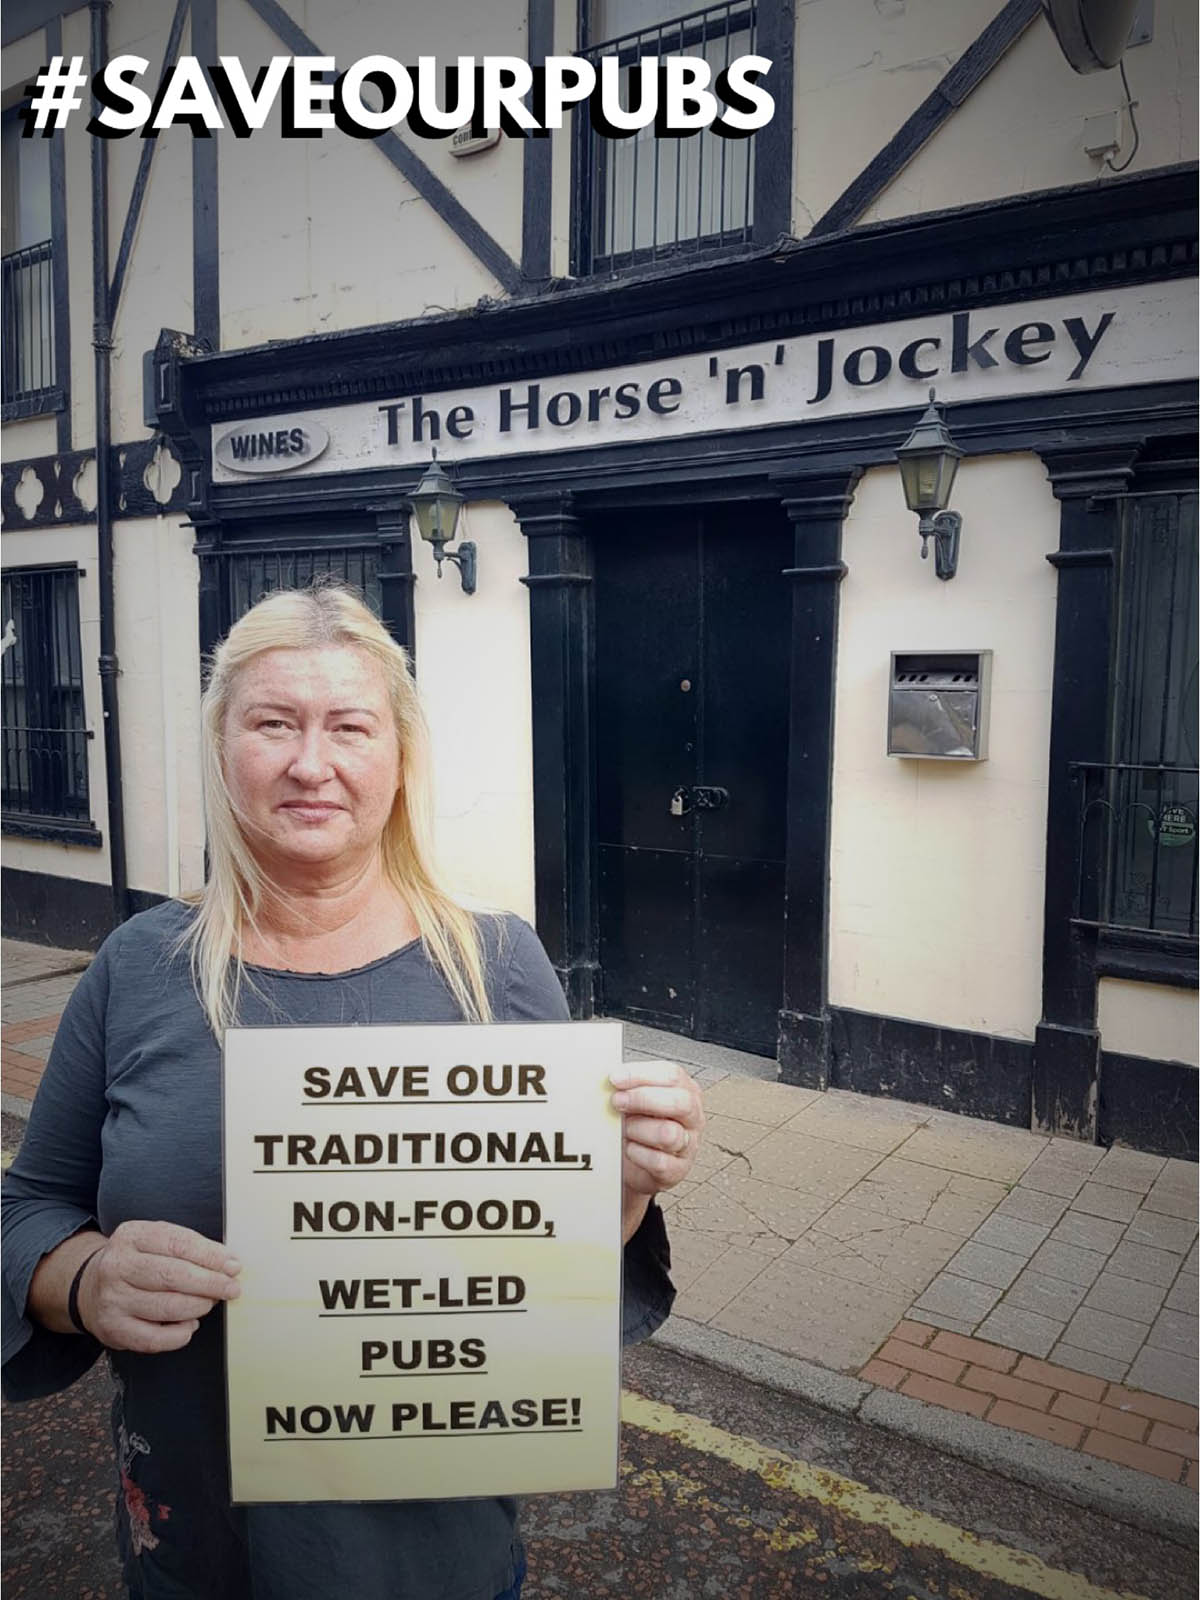 SAVEOURPUBS - The Horse n Jockey